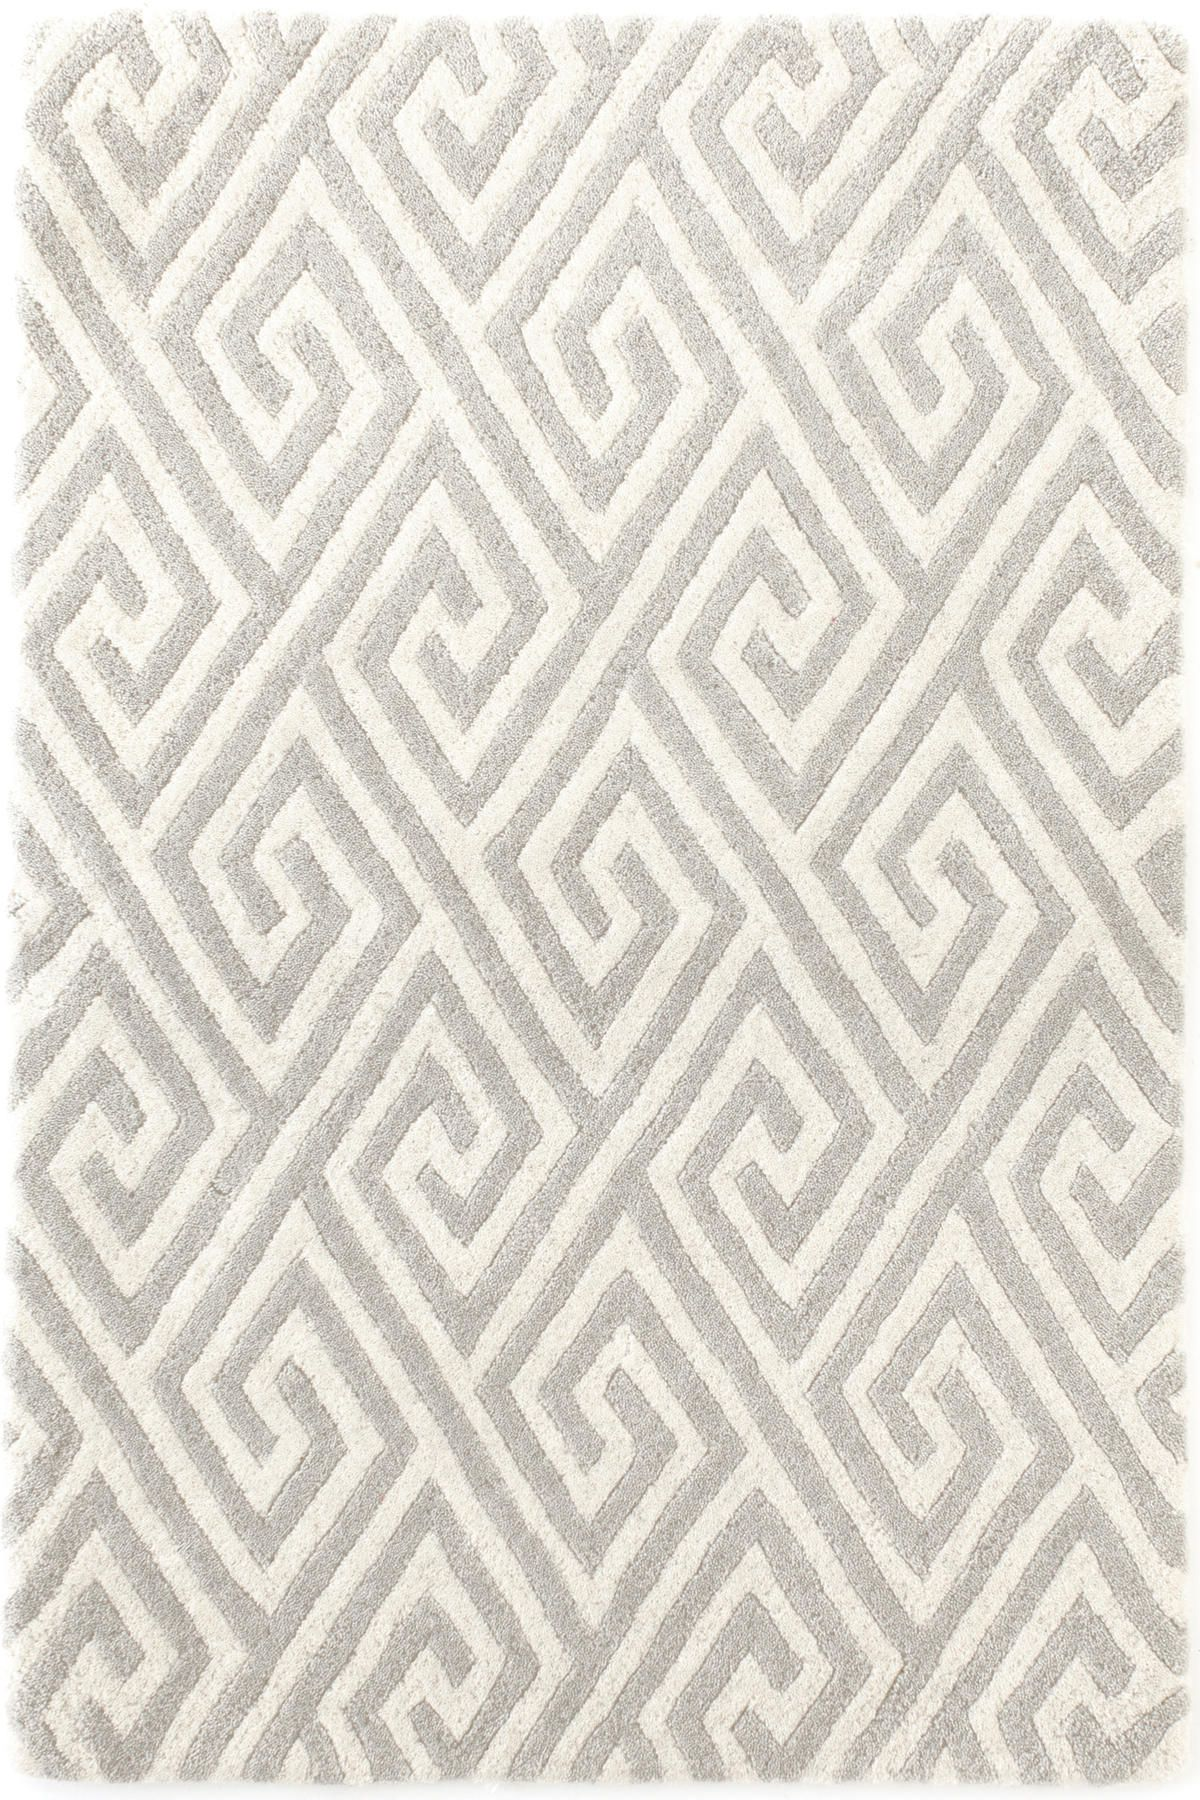 Fretwork Grey Tufted Carved Wool Rug